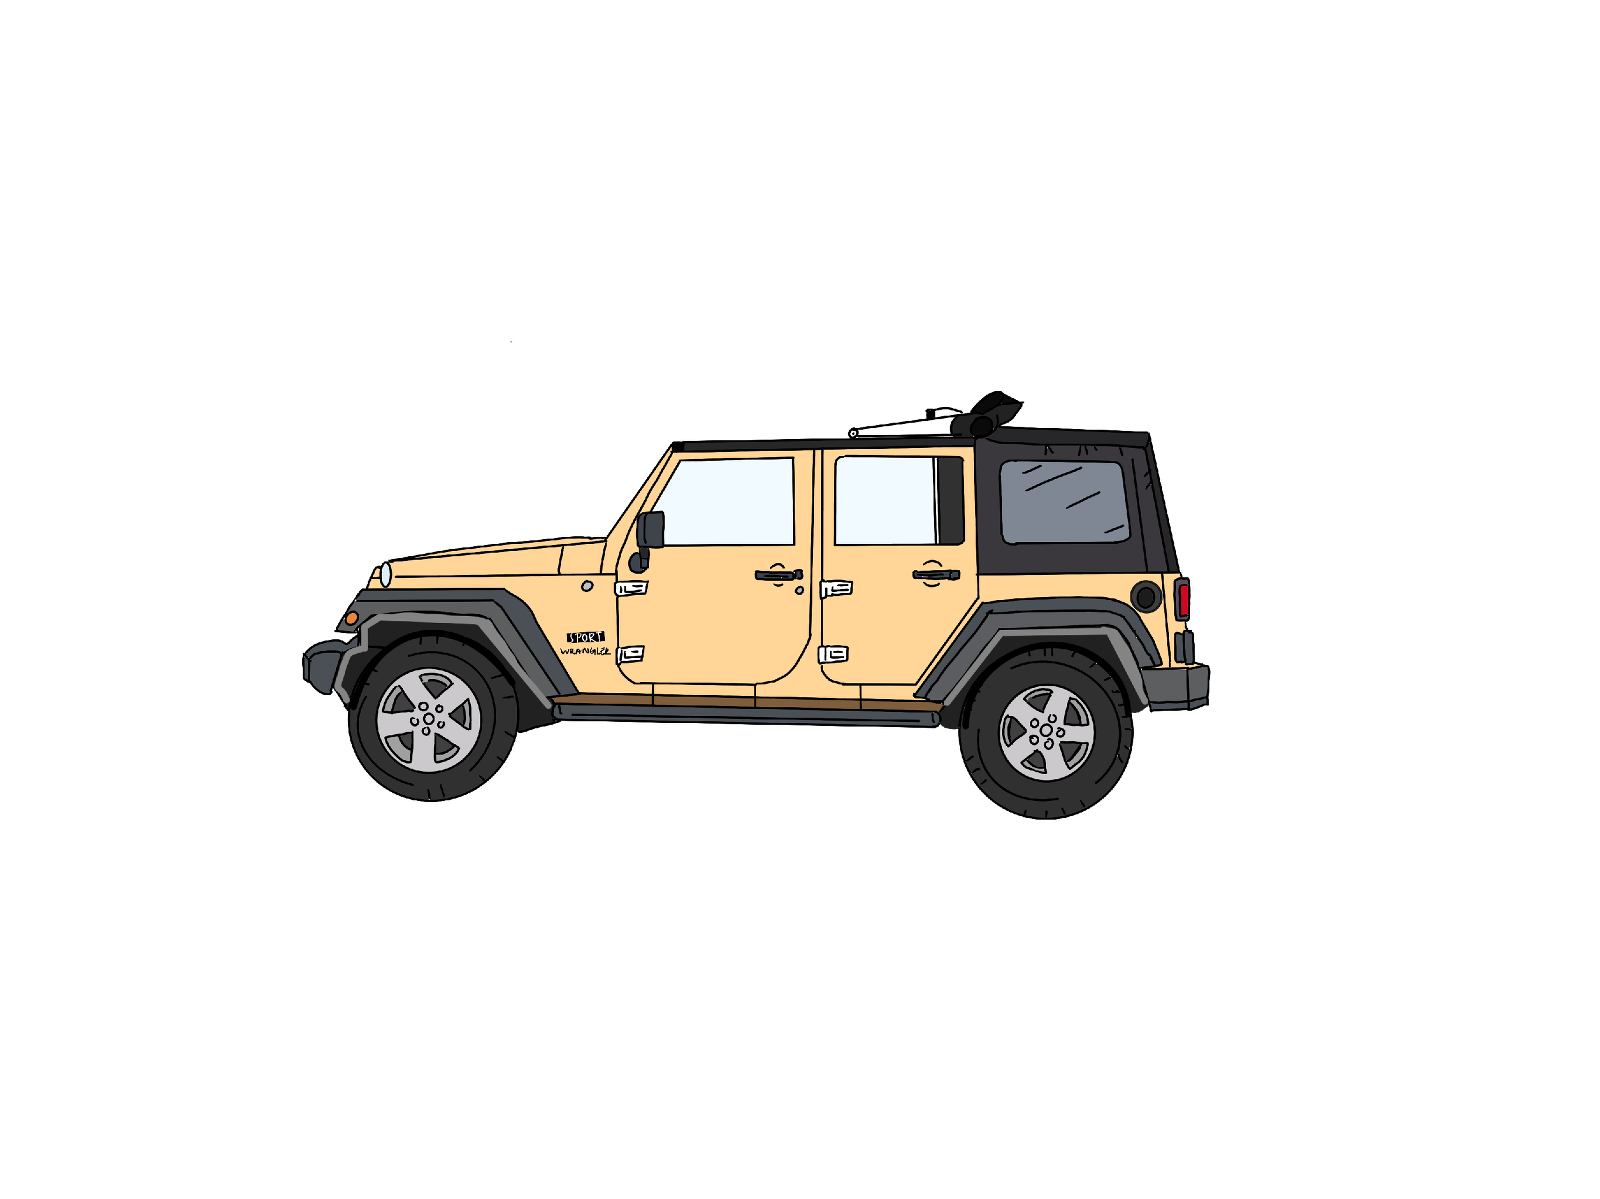 Jeep Waver Illustration for Kaitlyn Ferris Wedding Photography - Things I love